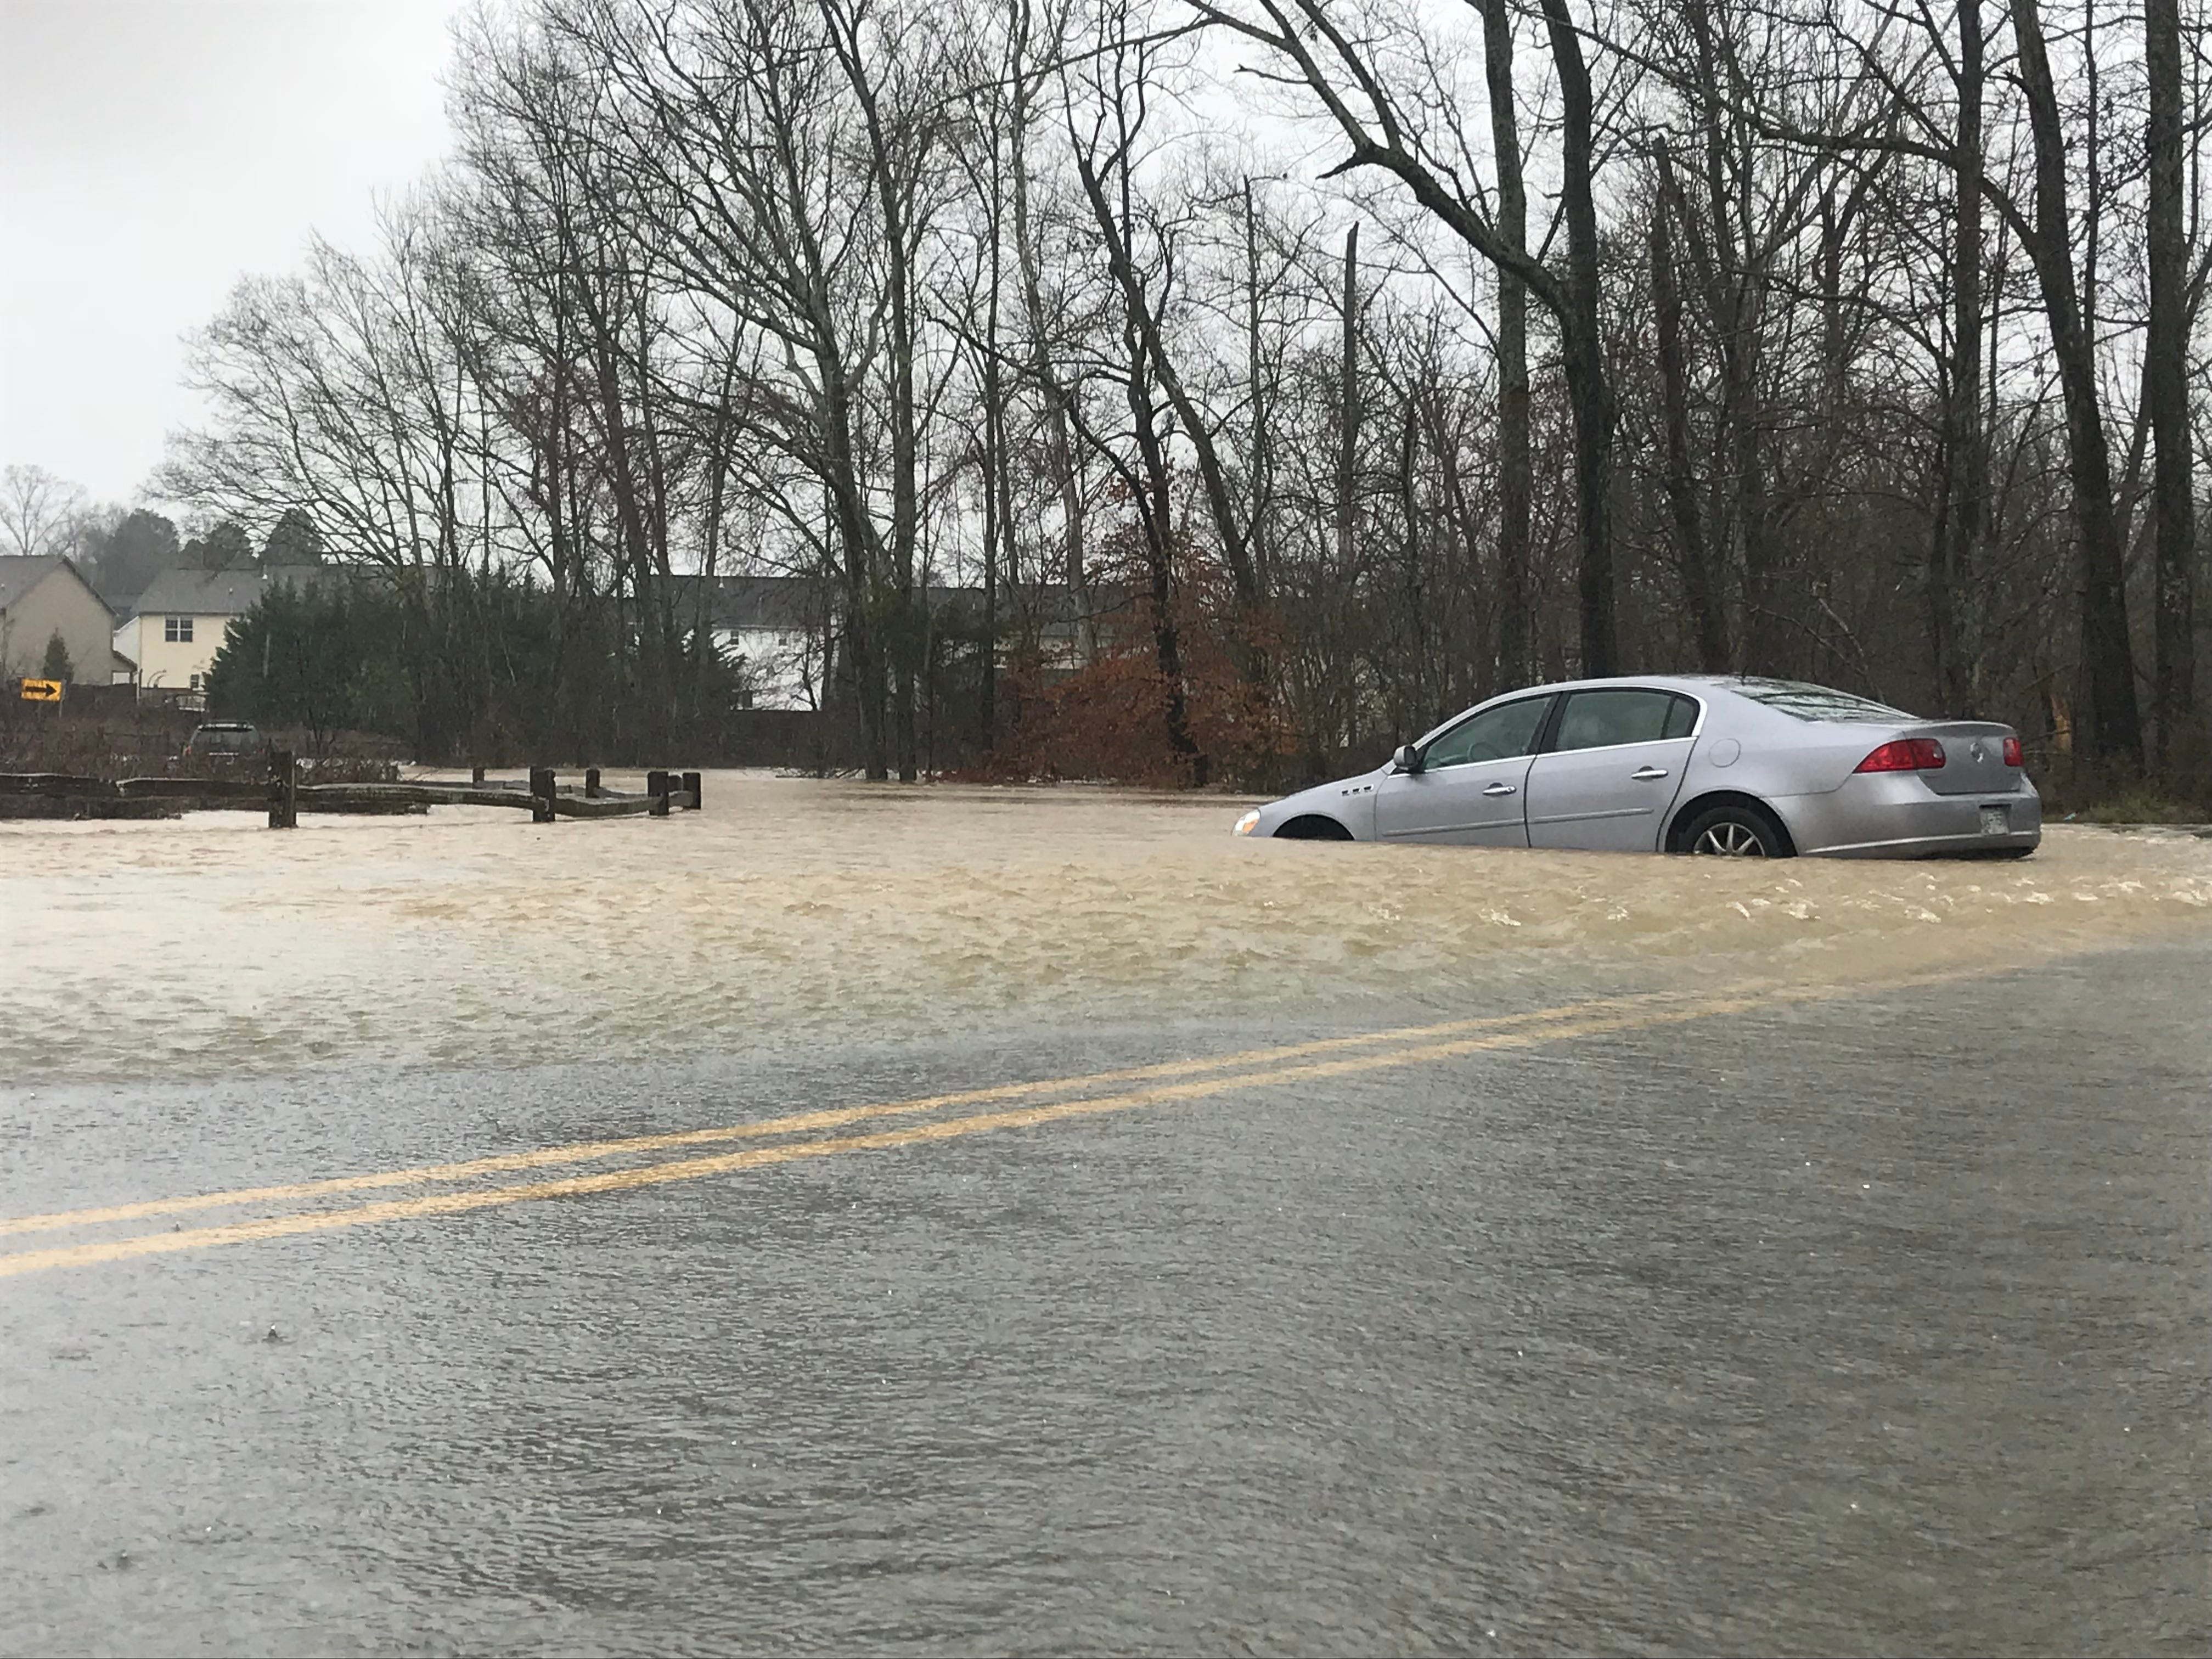 Brenda Colbert's Buick Lucerne became trapped in floodwaters Saturday on Harrell Road in Knoxville. She was rescue by the Karns Fire Department on Feb. 23, 2019.